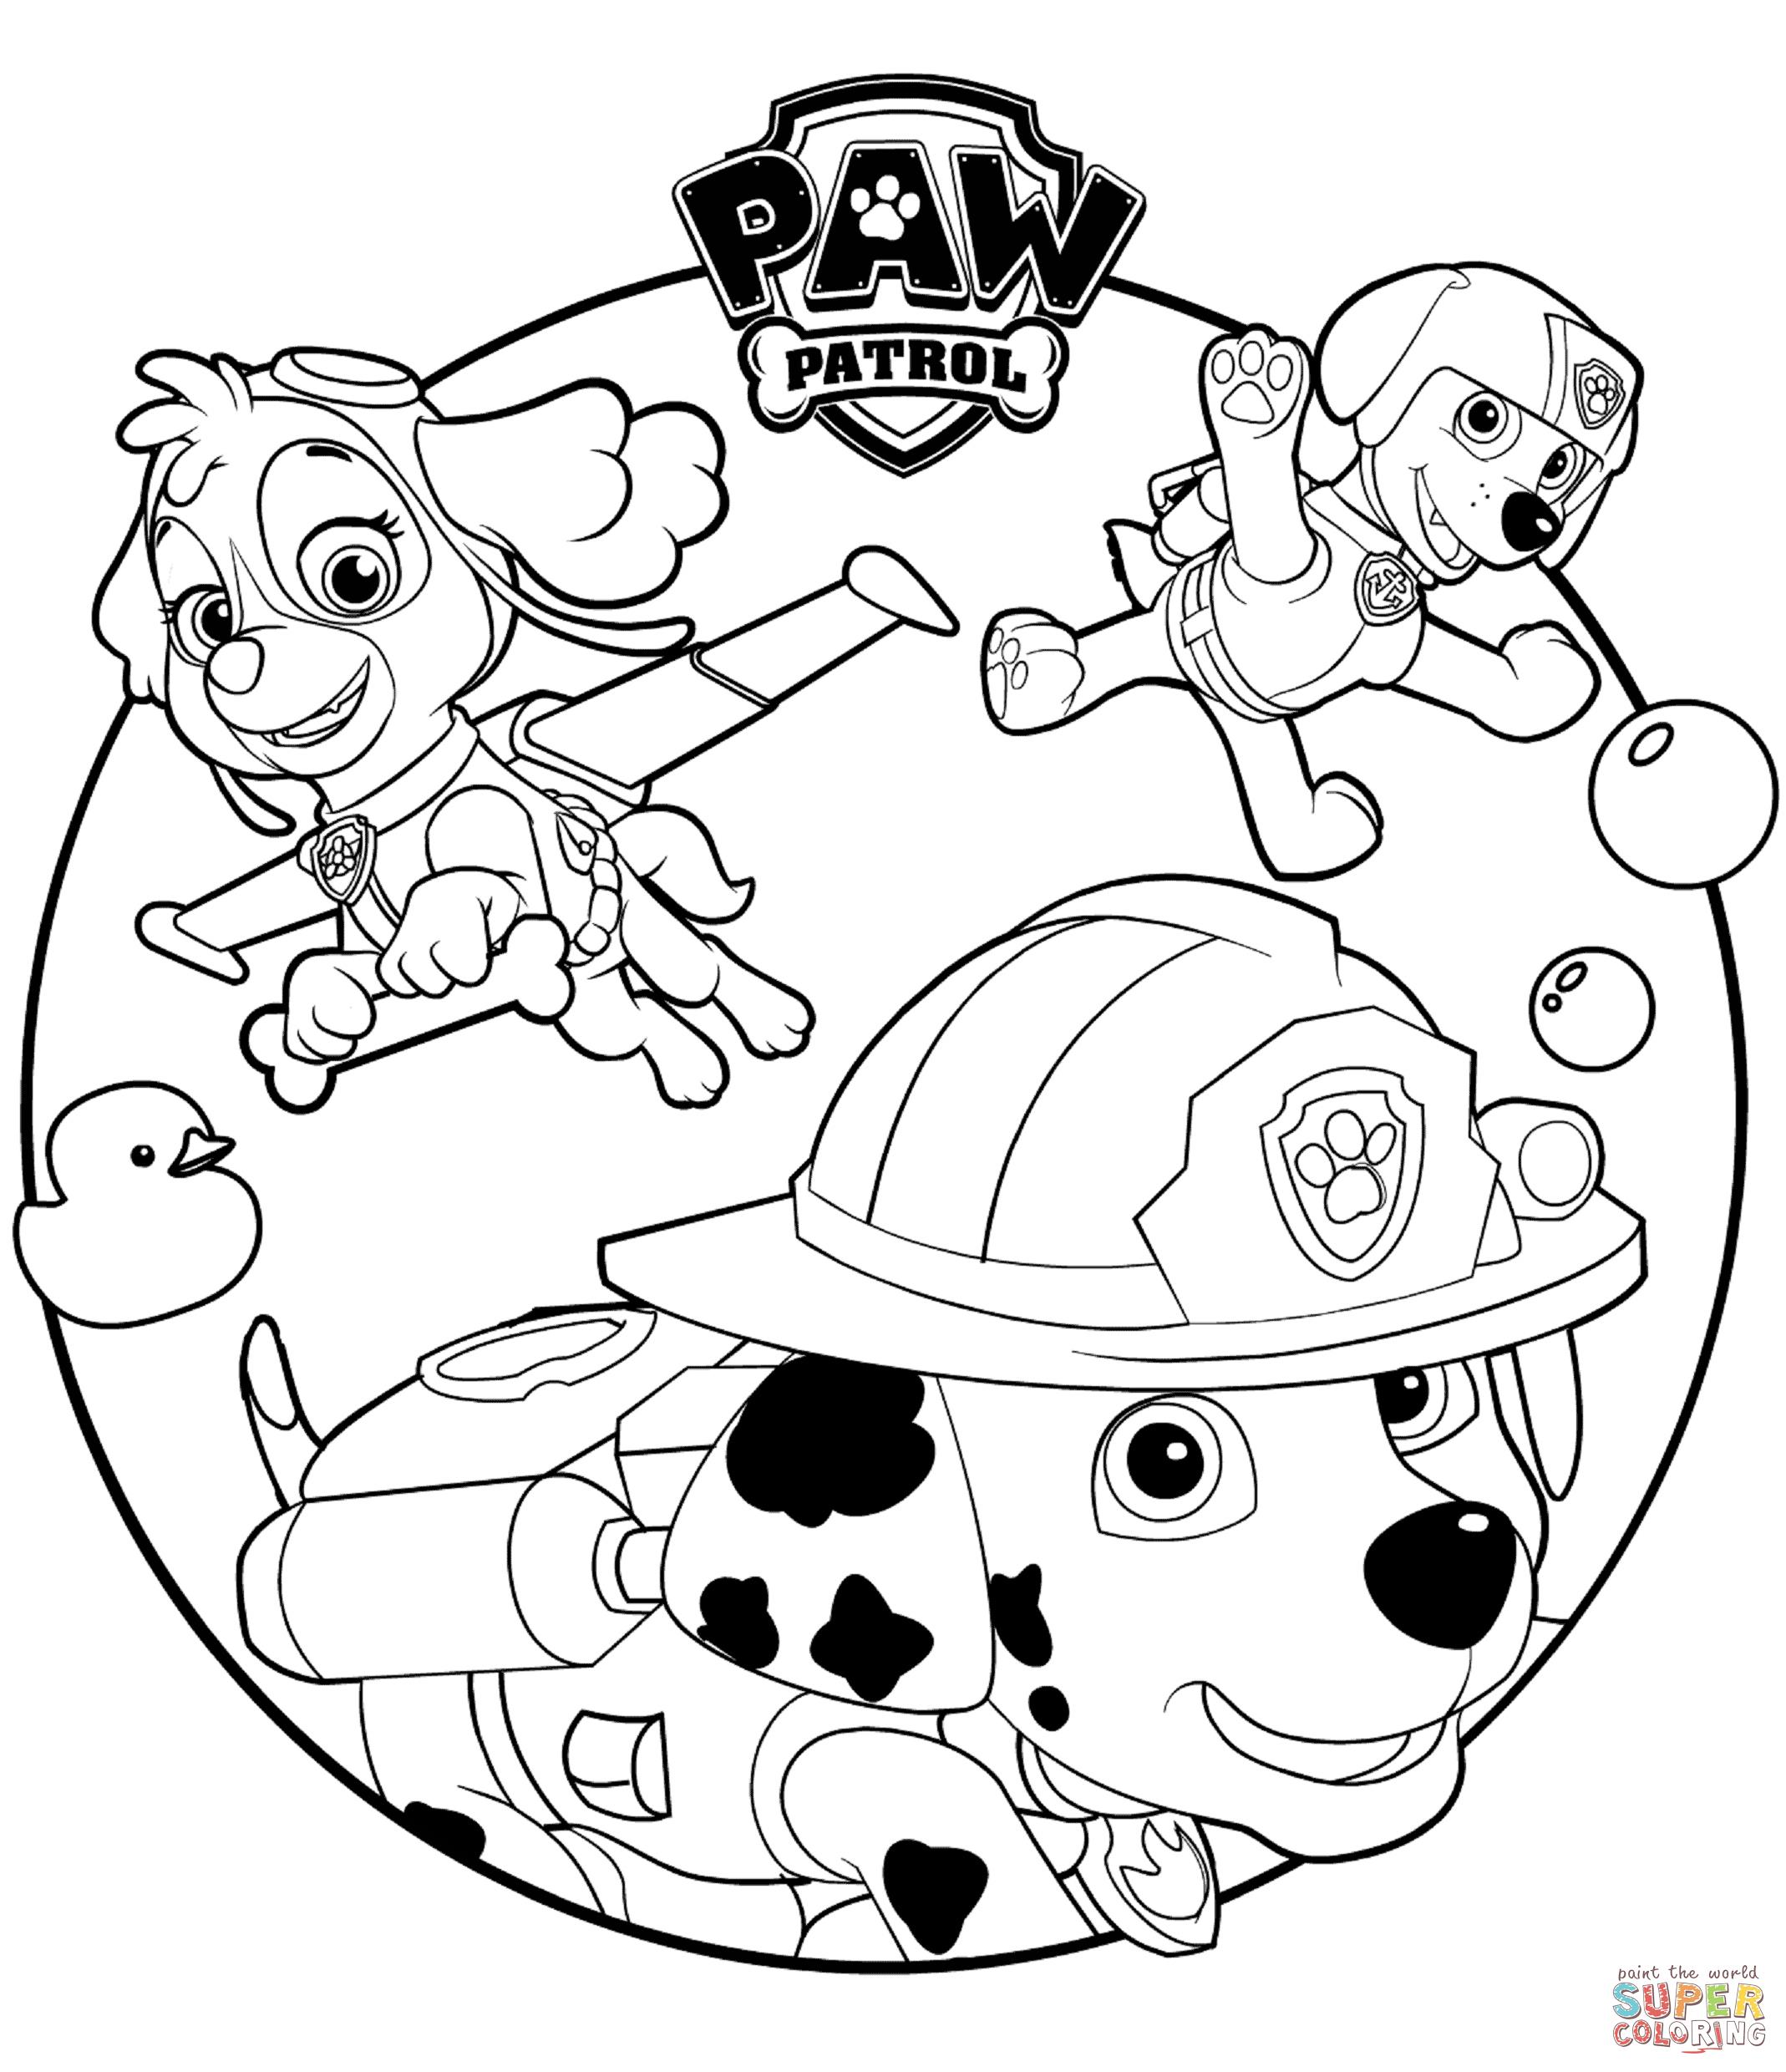 paw patrol birthday coloring sheets ; skye-marshall-and-rocky-coloring-page